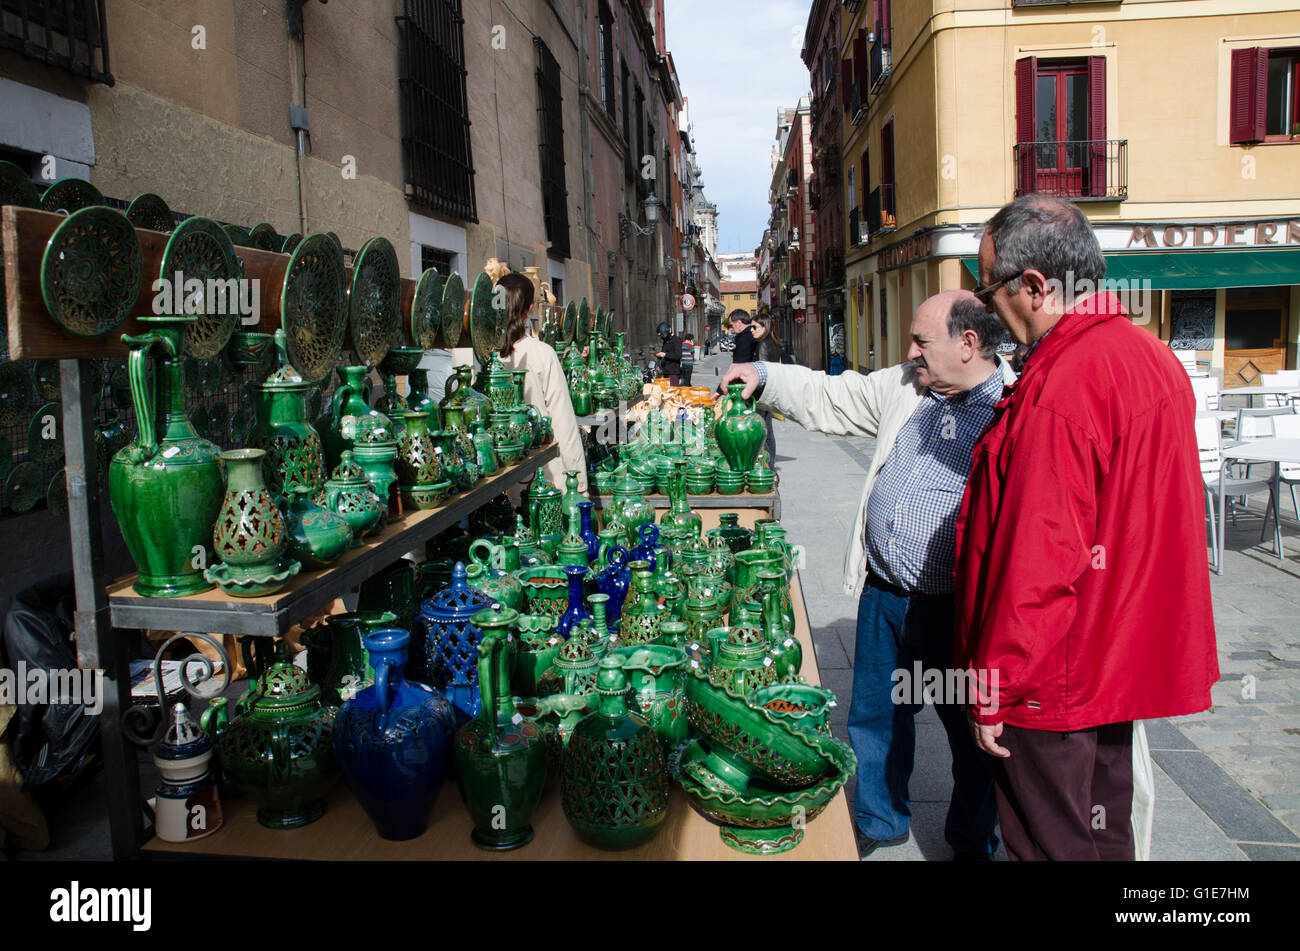 Madrid, Spain. 13th May, 2016. Two men inspecting a jar with a green vitreous enamel made by the potter 'Gongora' - Stock Image